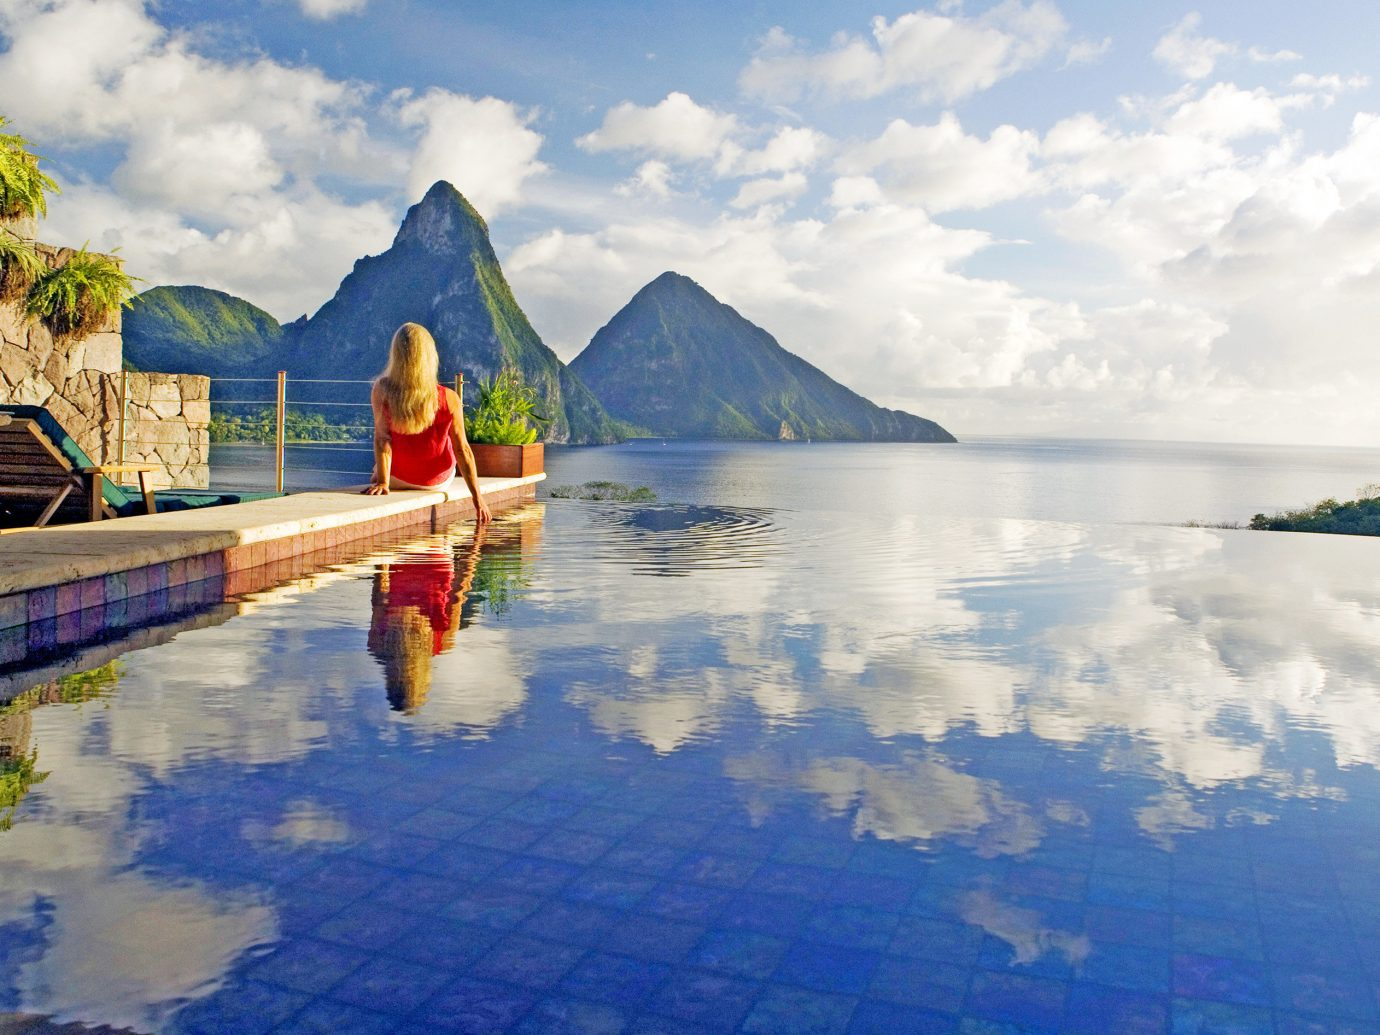 Hotels Luxury Travel sky outdoor Nature leisure mountain water reflection tourism vacation cloud swimming pool Sea landscape recreation Lake tropics Resort